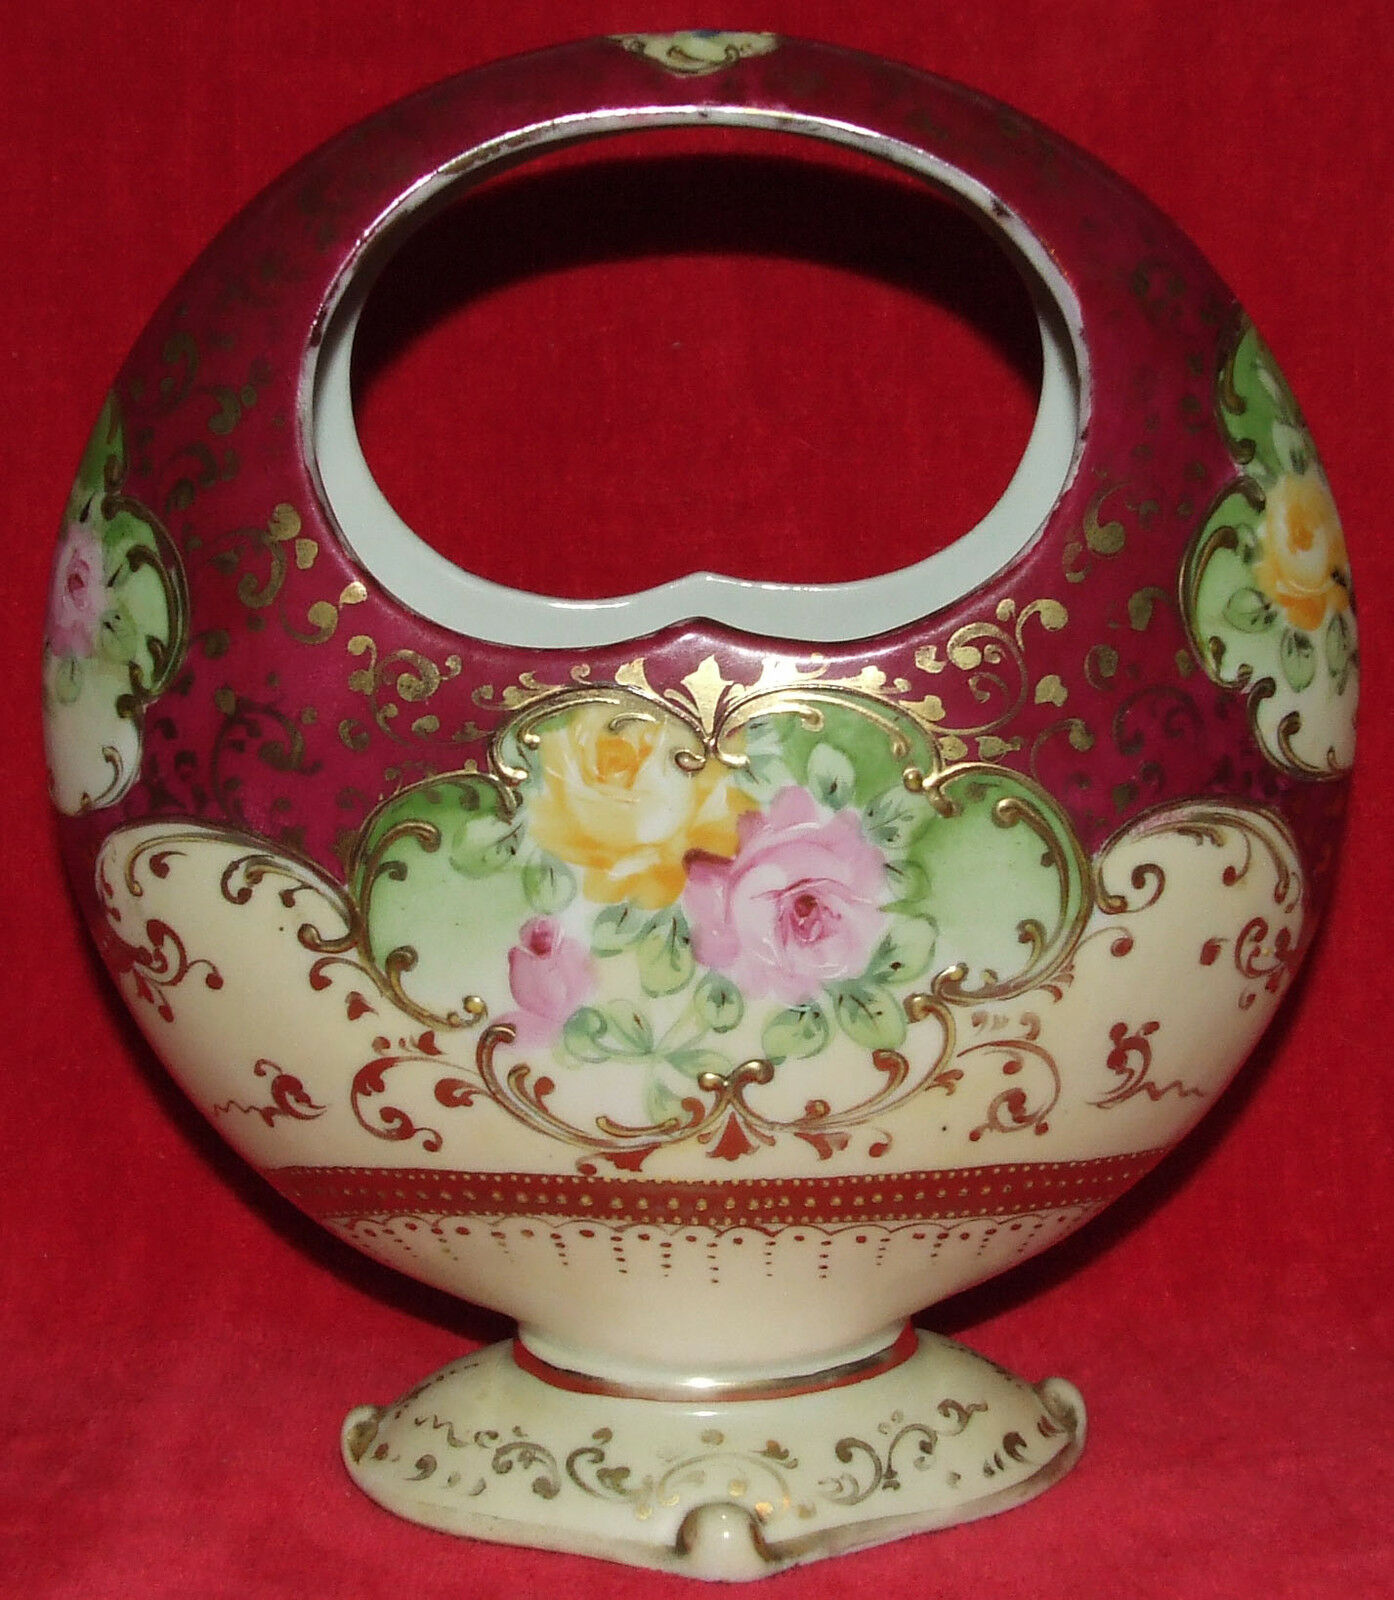 RARE ANTIQUE NIPPON MOON BASKET VASE HAND PAINTED MORIAGE ROSES & GOLD SCROLLS